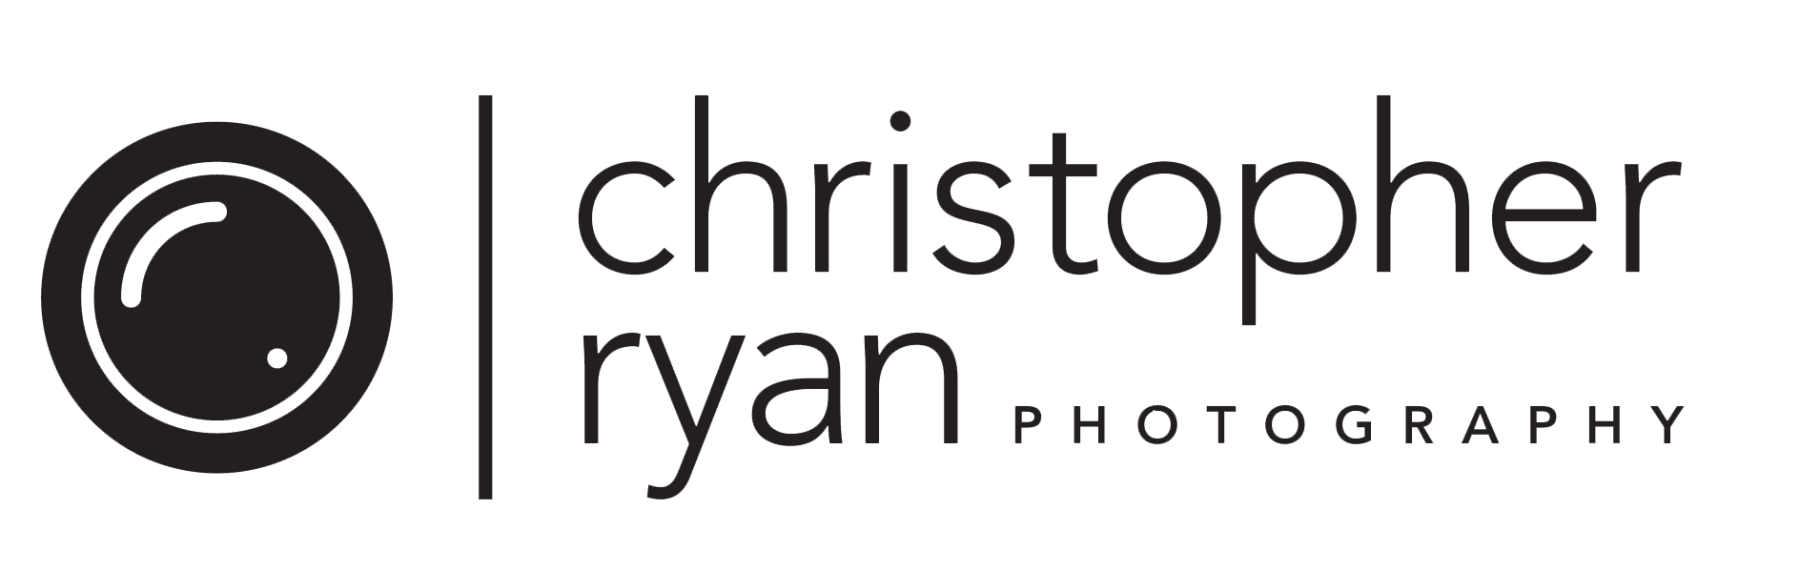 Logos for photography png. Artist statement christopher ryan